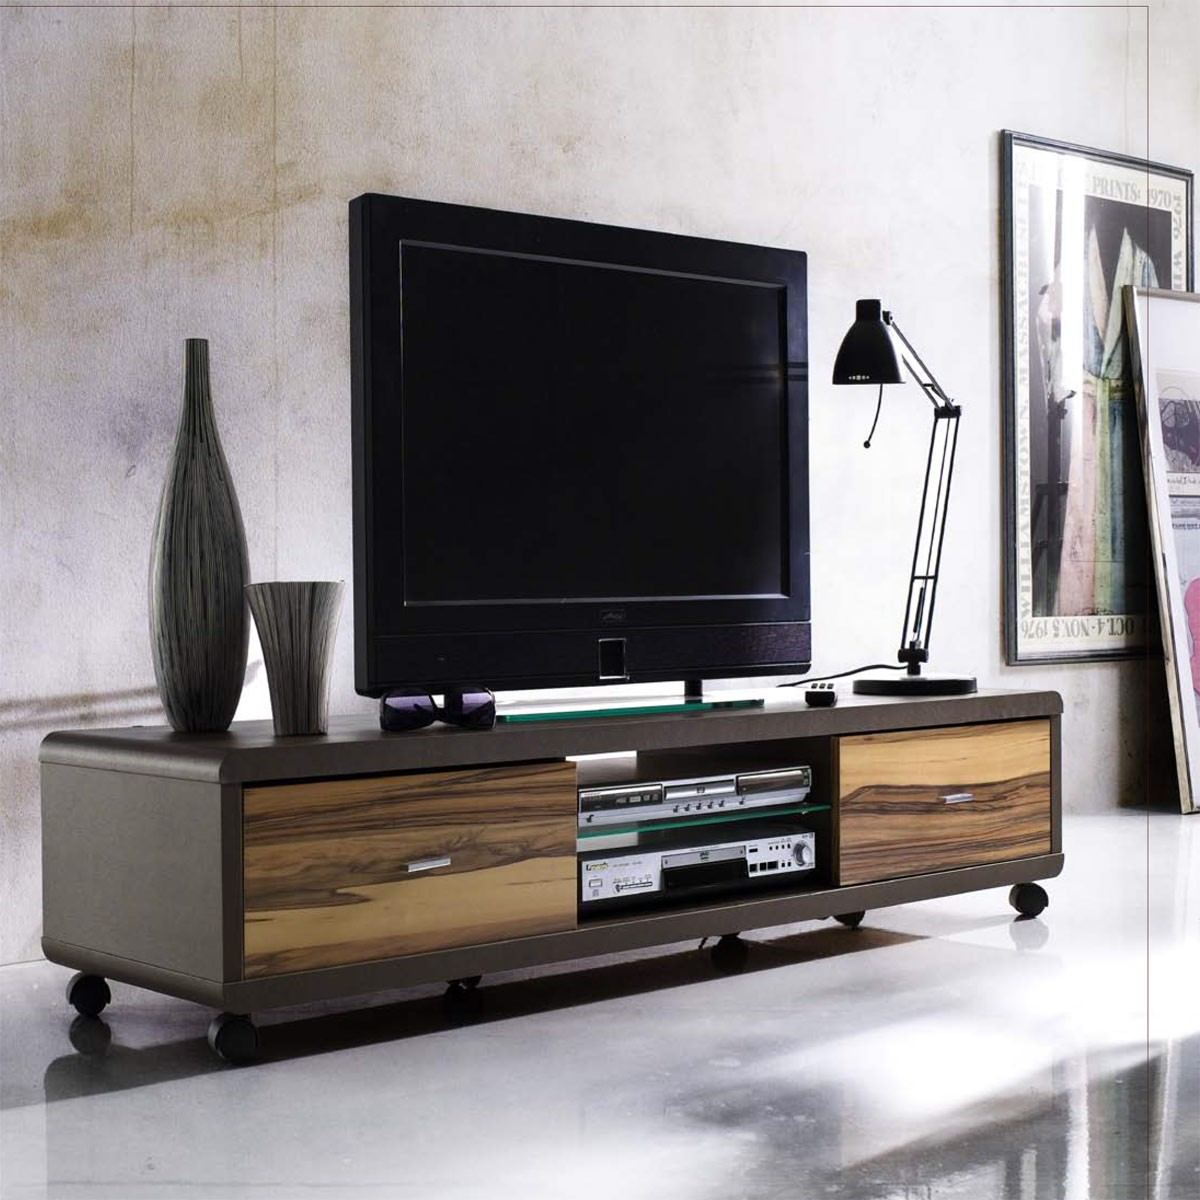 lowboard tv lowboard tv unterteil auf rollen in braun. Black Bedroom Furniture Sets. Home Design Ideas